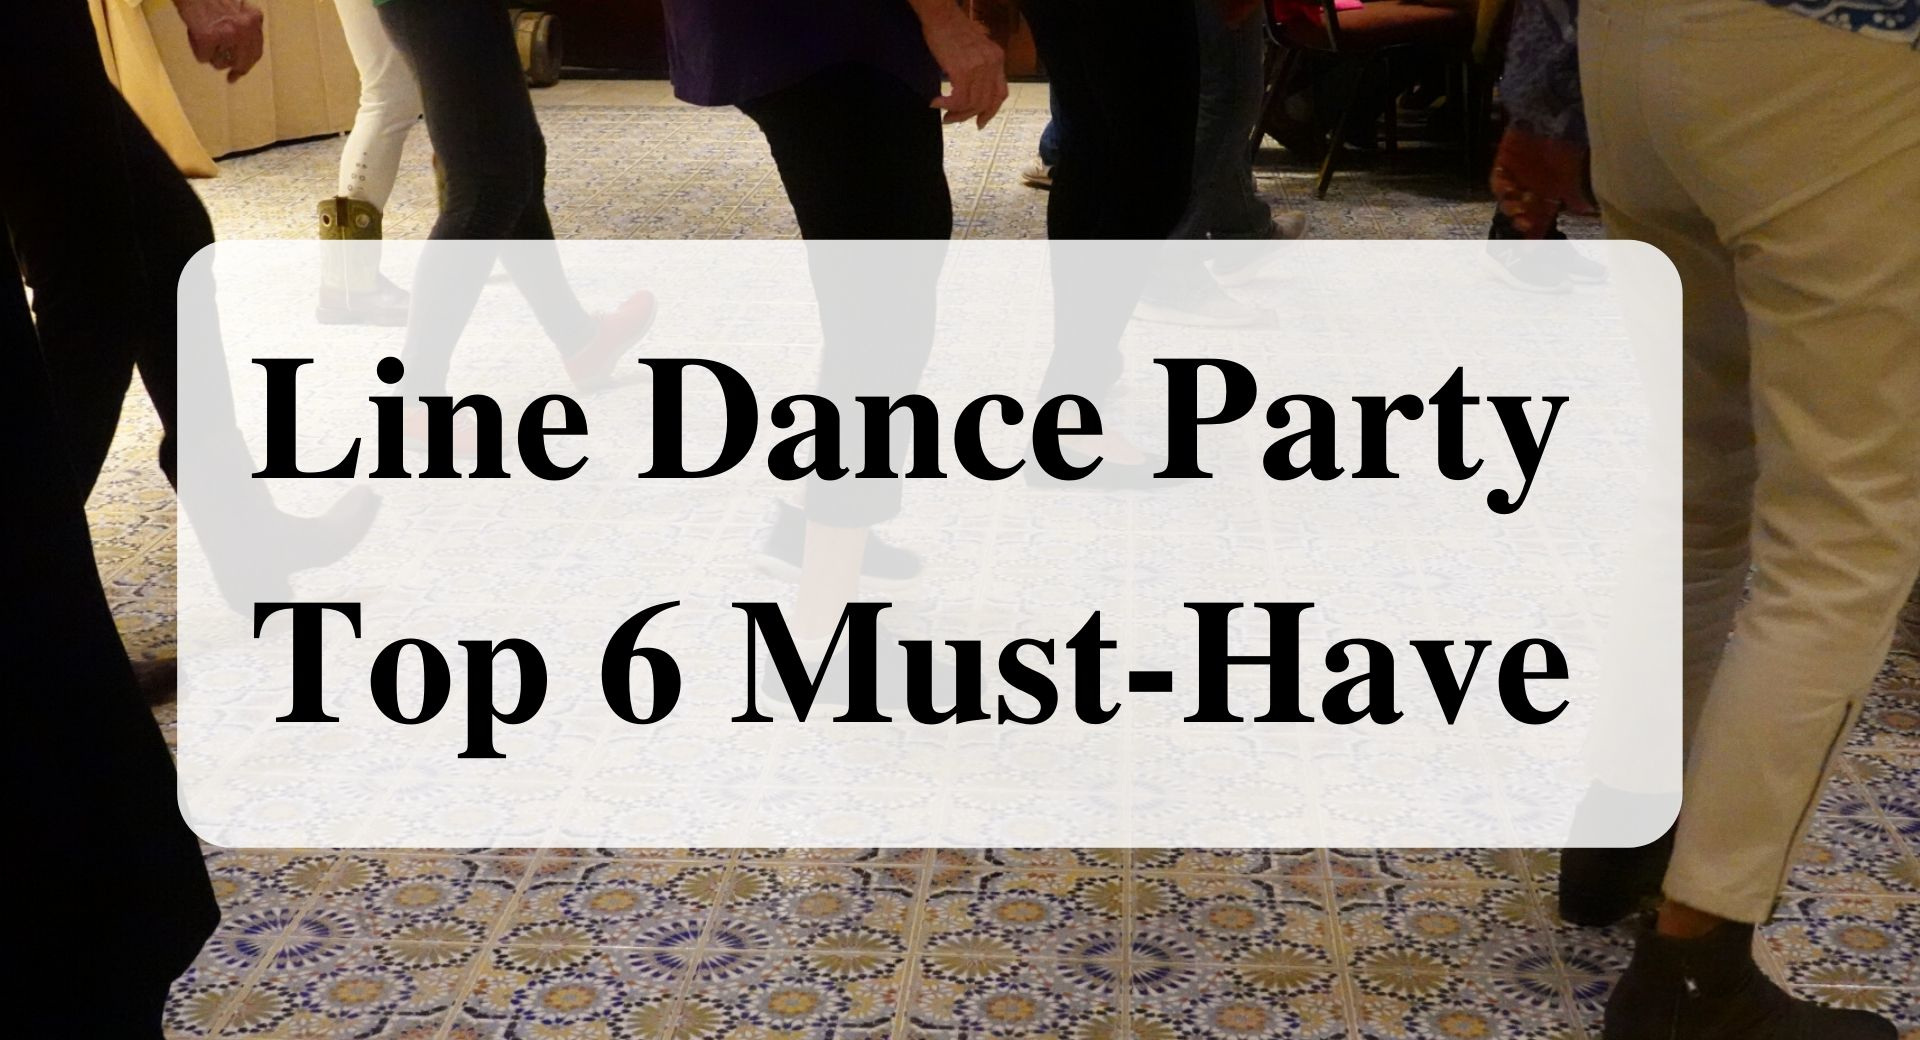 Line Dance Party Top 6 Must-Have main Forever sabbatical